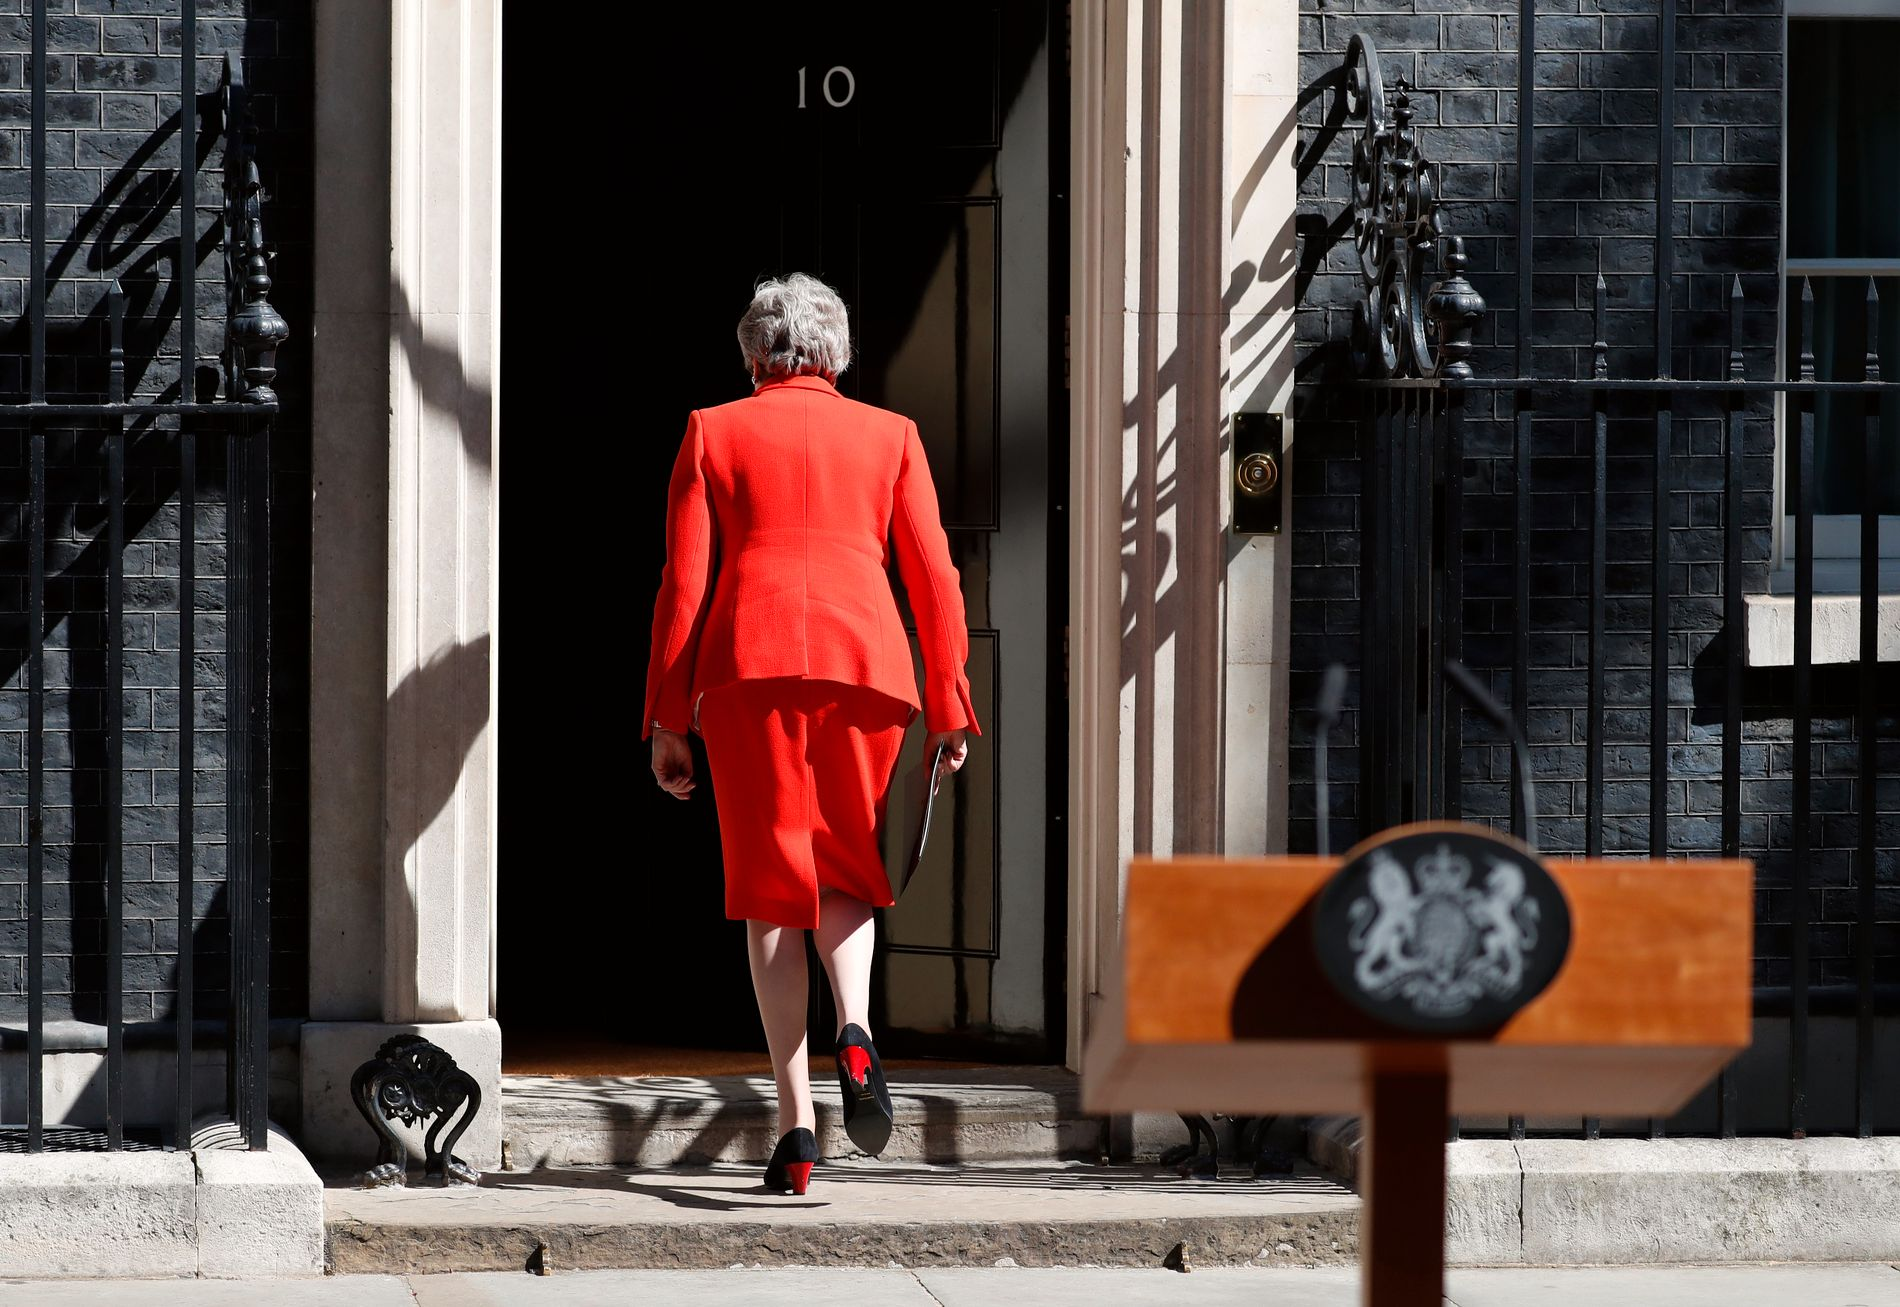 – Det er nå klart for meg at det er i landets beste interesse at en ny statsminister leder innsatsen, sa Theresa May i en følelsesladd tale utenfor statsministerboligen i London fredag. Foto: Alastair Grant / AP / NTB scanpix